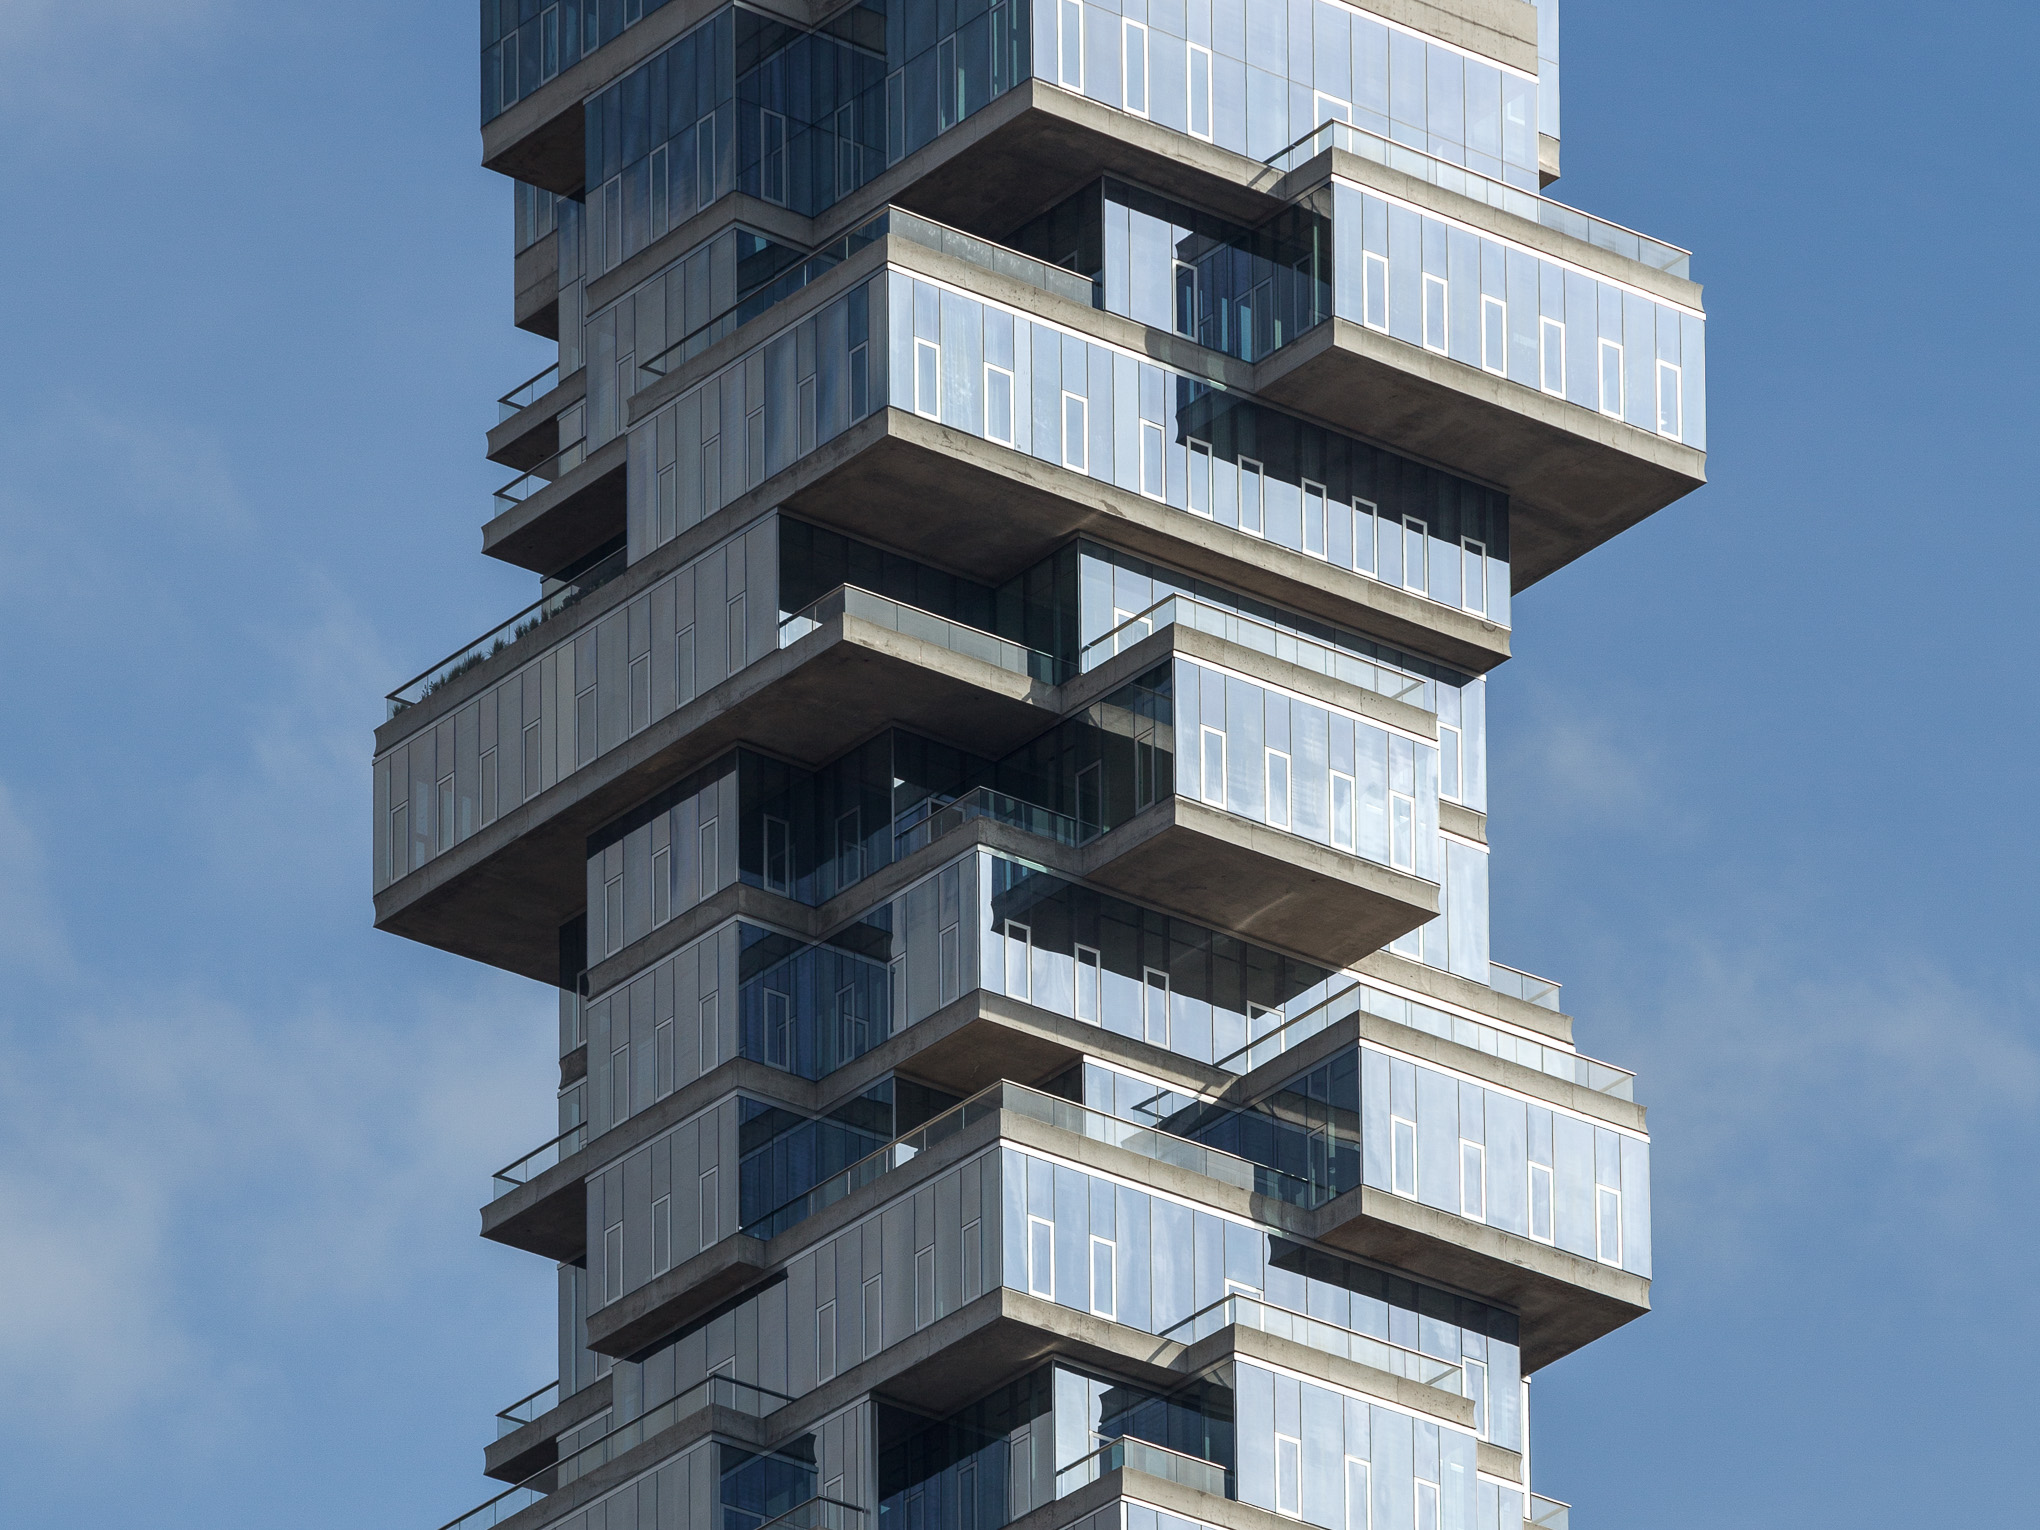 56 Leonard St - New York City - Herzog & de Meuron